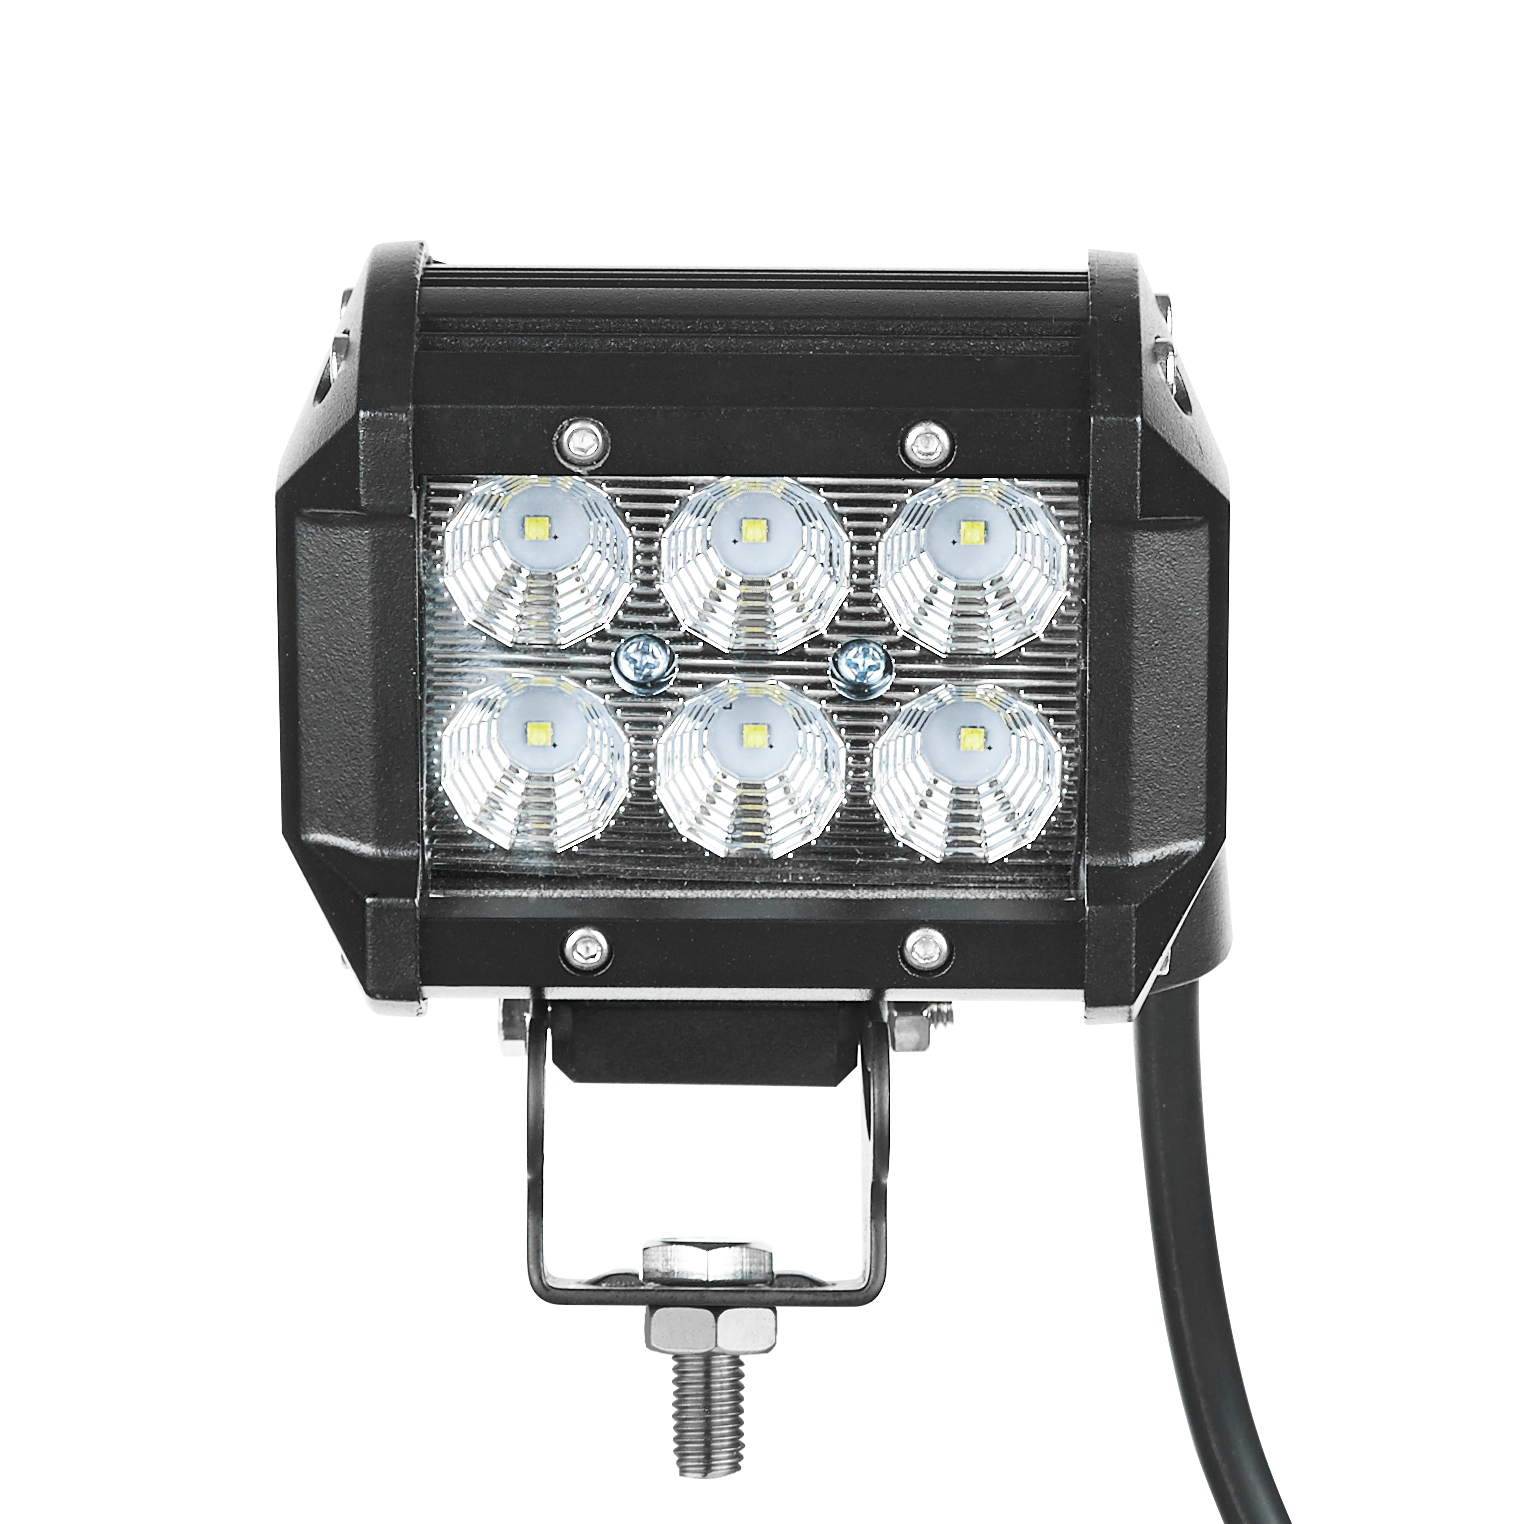 "LED worklight vehicles 4"" 18w car work light"